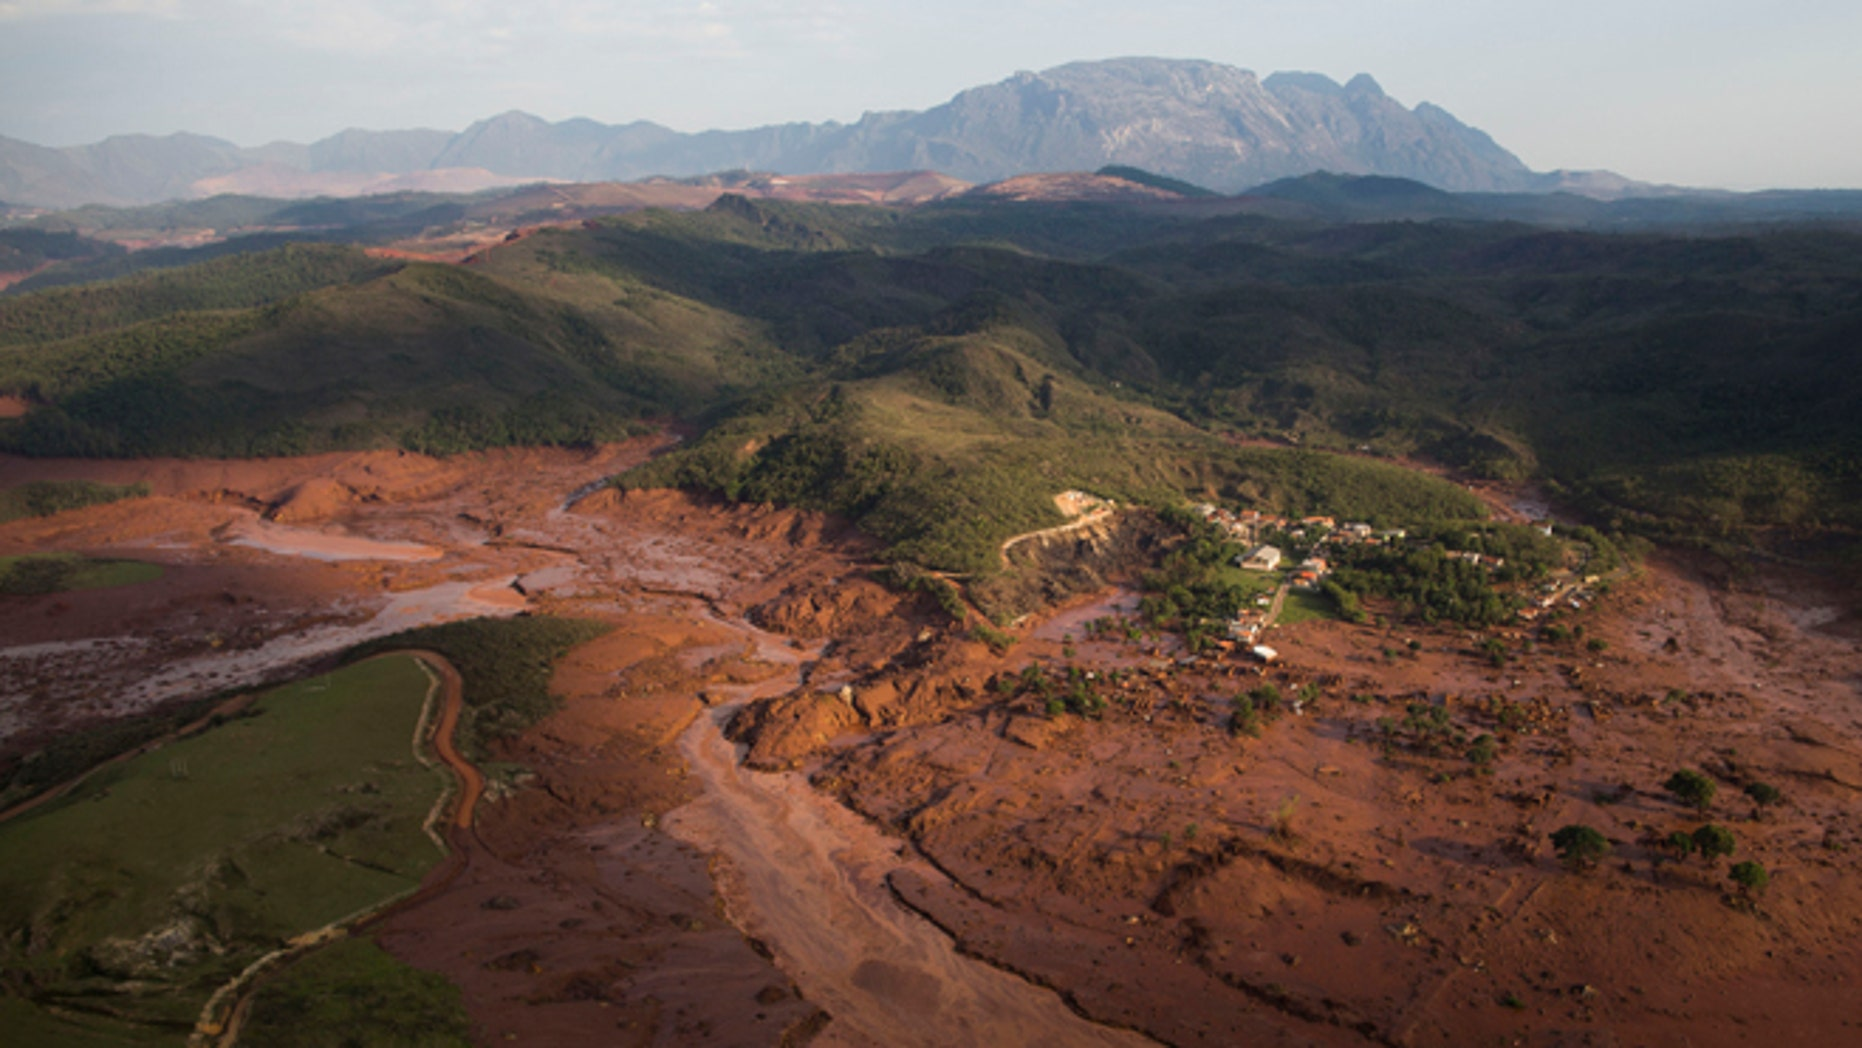 Aerial view of the debris and mud on Thursday, at the small town of Bento Rodrigues after a dam burst in Minas Gerais state, Brazil, Friday, Nov .6, 2015.  Brazilian rescuers searched feverishly Friday for possible survivors after two dams burst at an iron ore mine in a southeastern mountainous area.  (AP Photo/Felipe Dana)